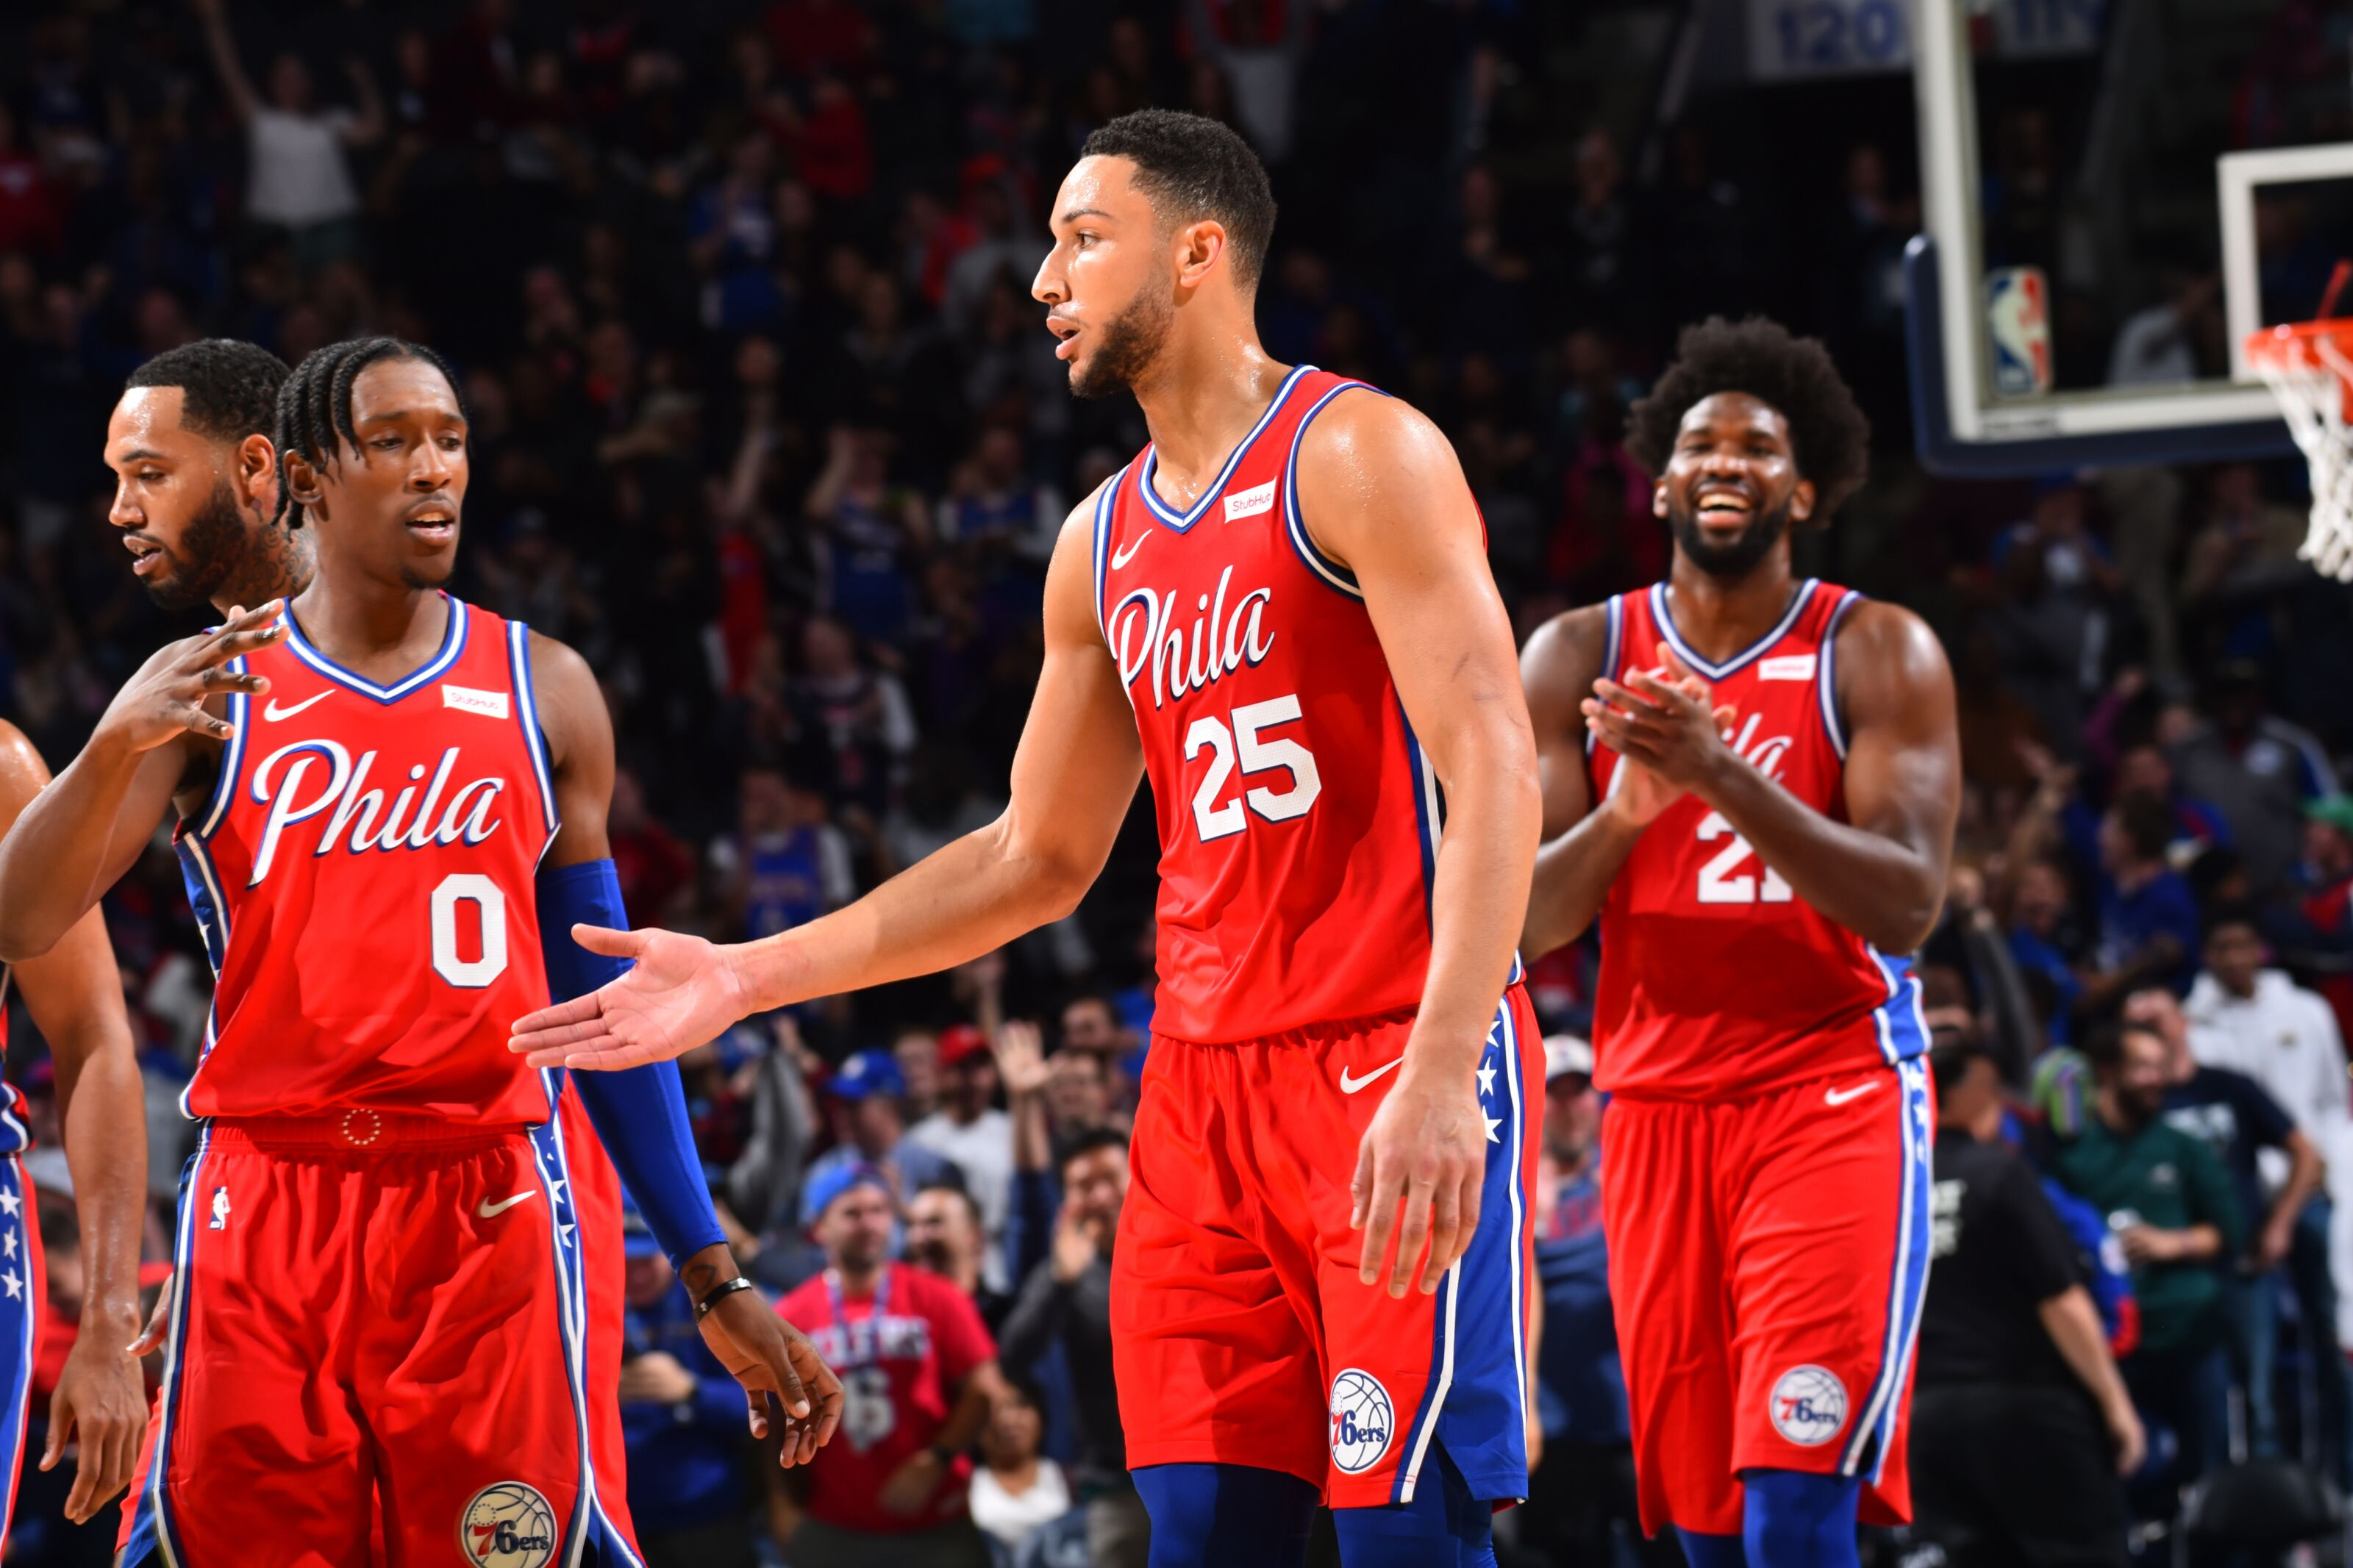 Philadelphia 76ers get snubbed in 2019's annual GM survey